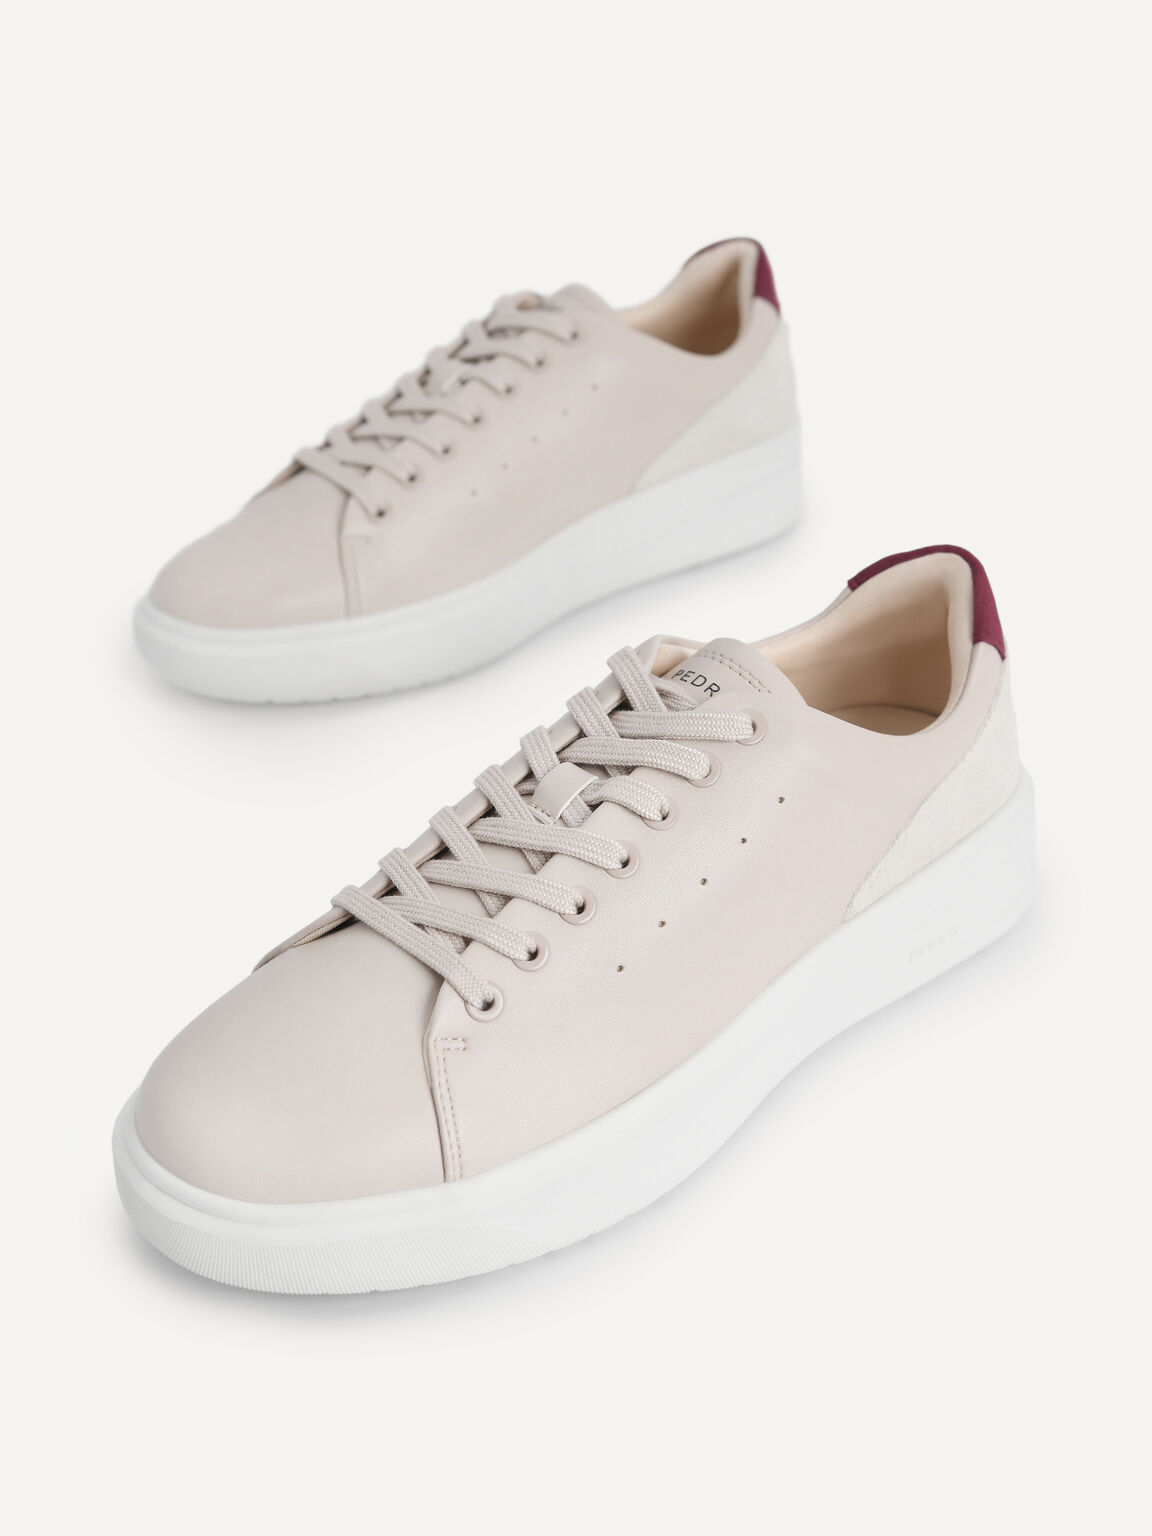 Dayflux Court Sneakers, Taupe, hi-res